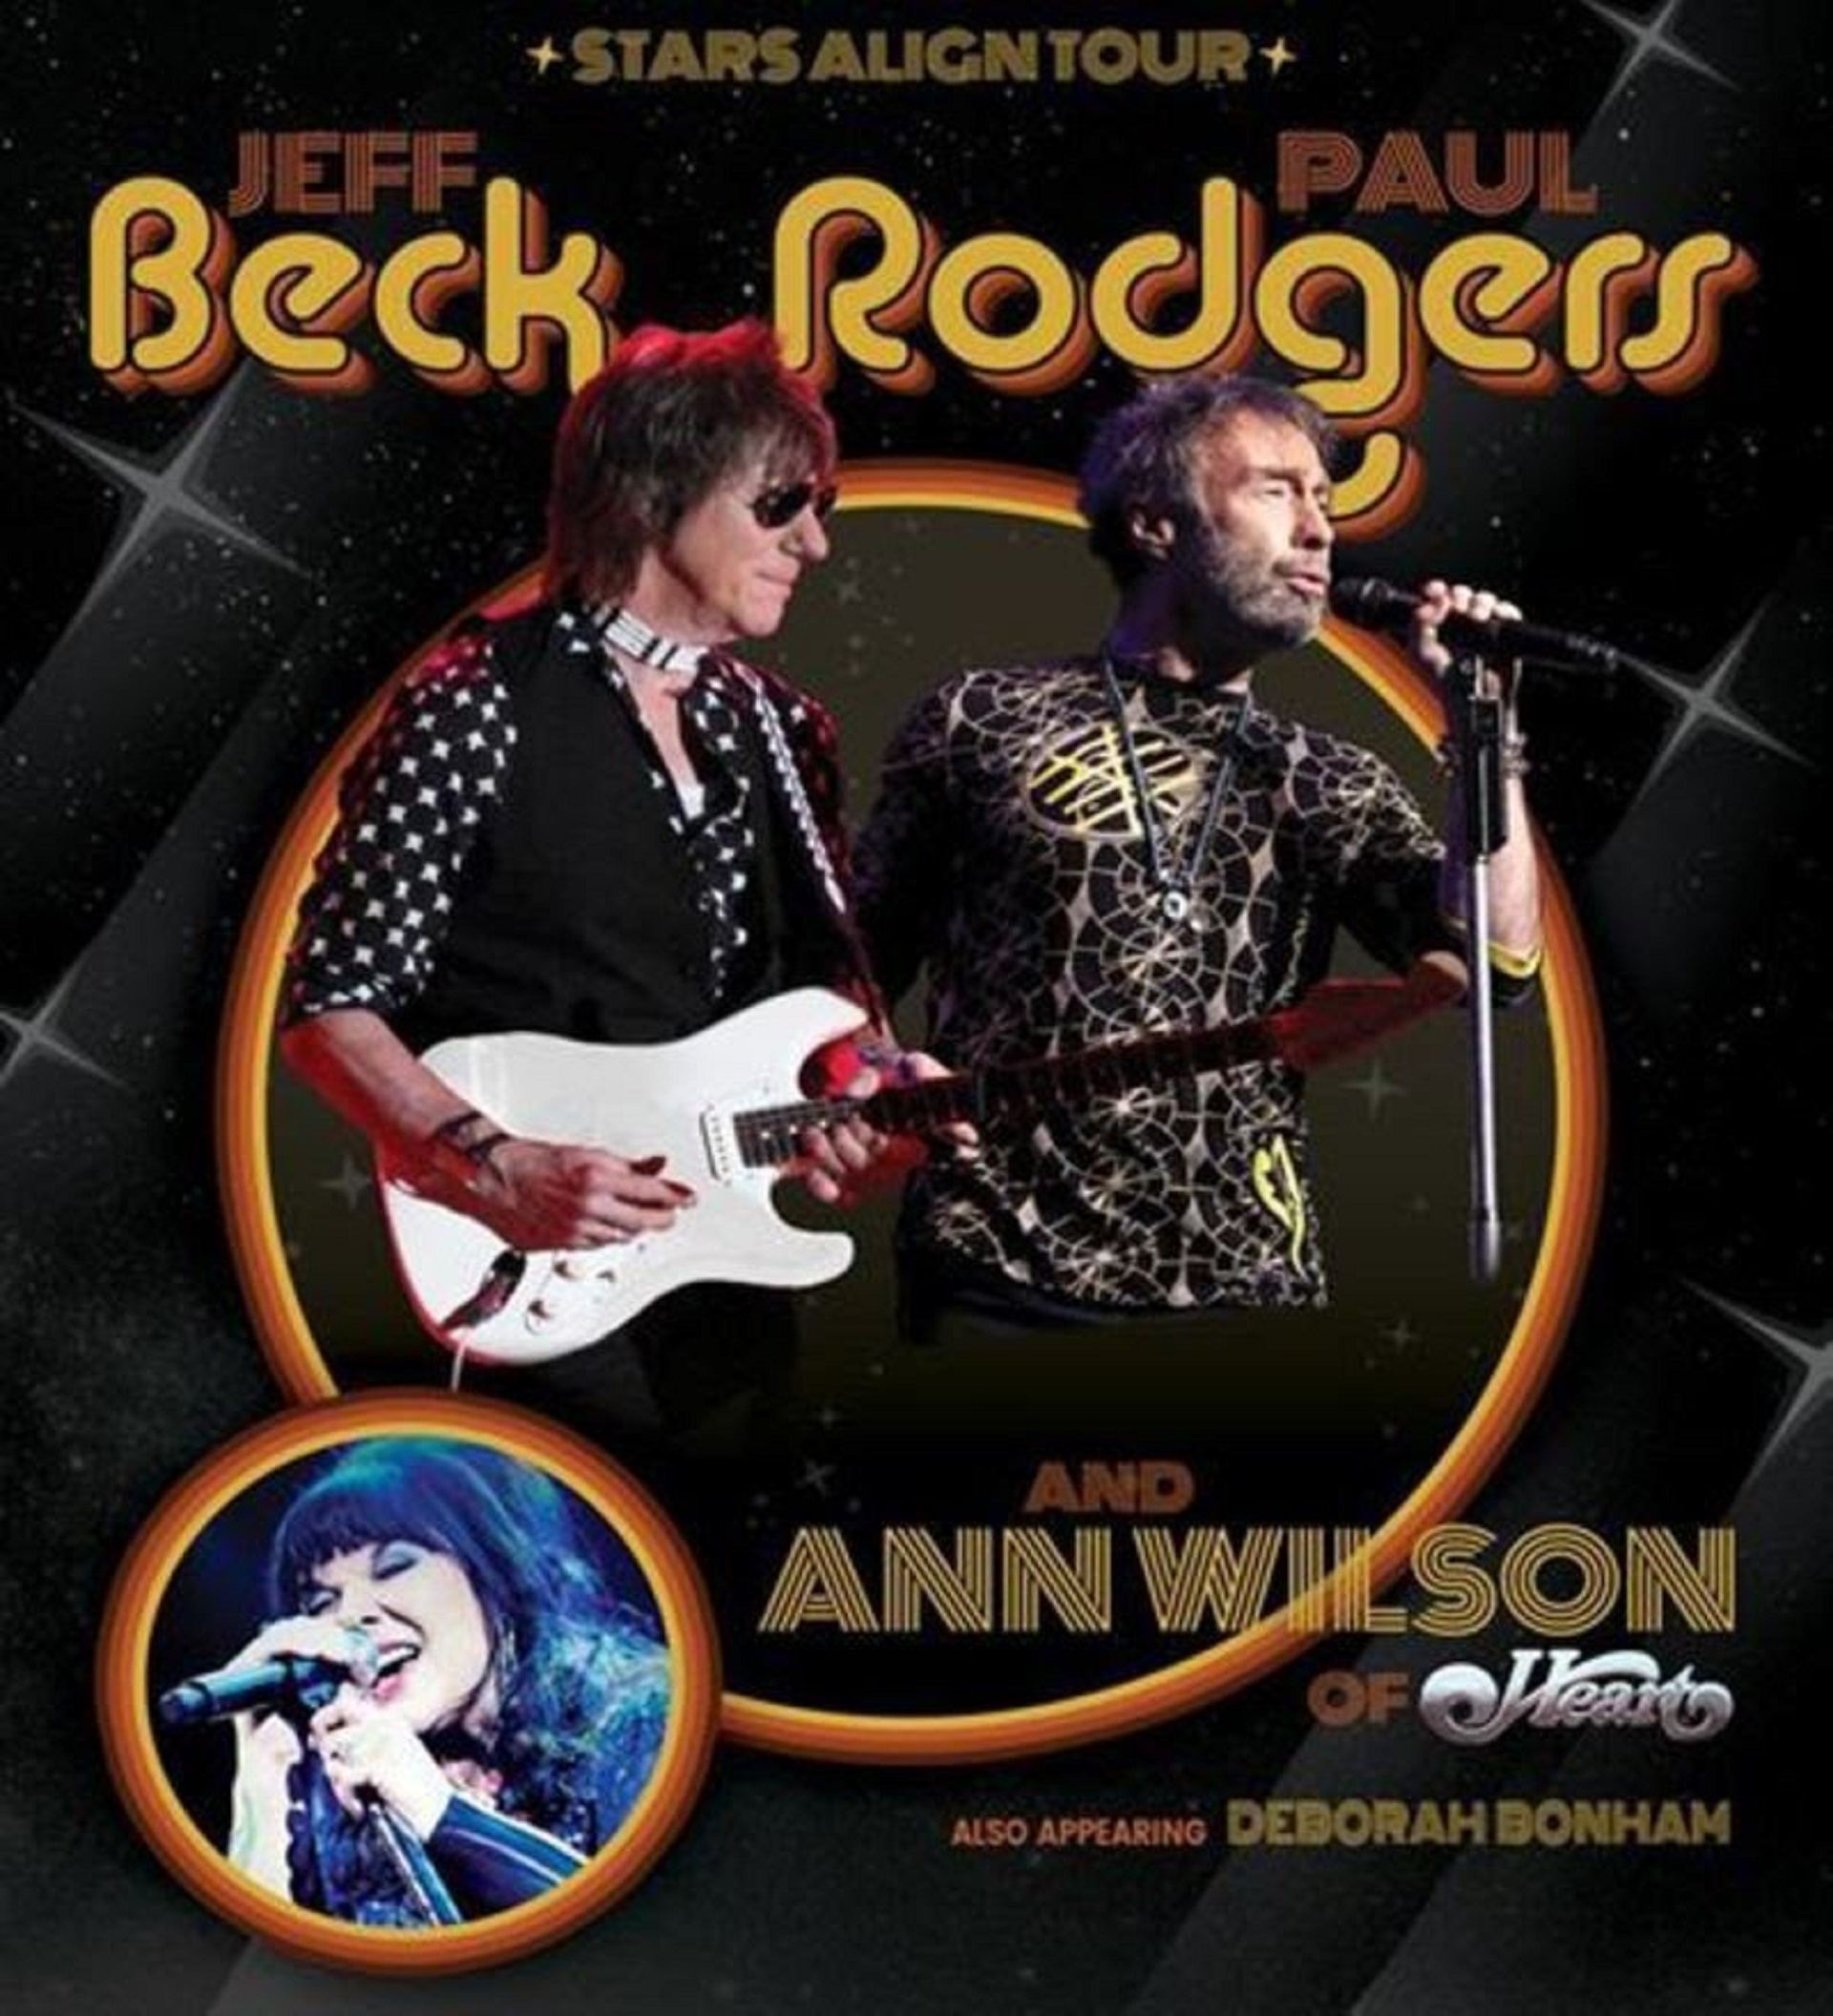 Stars Align Tour Begins With Paul Rodgers and Jeff Beck